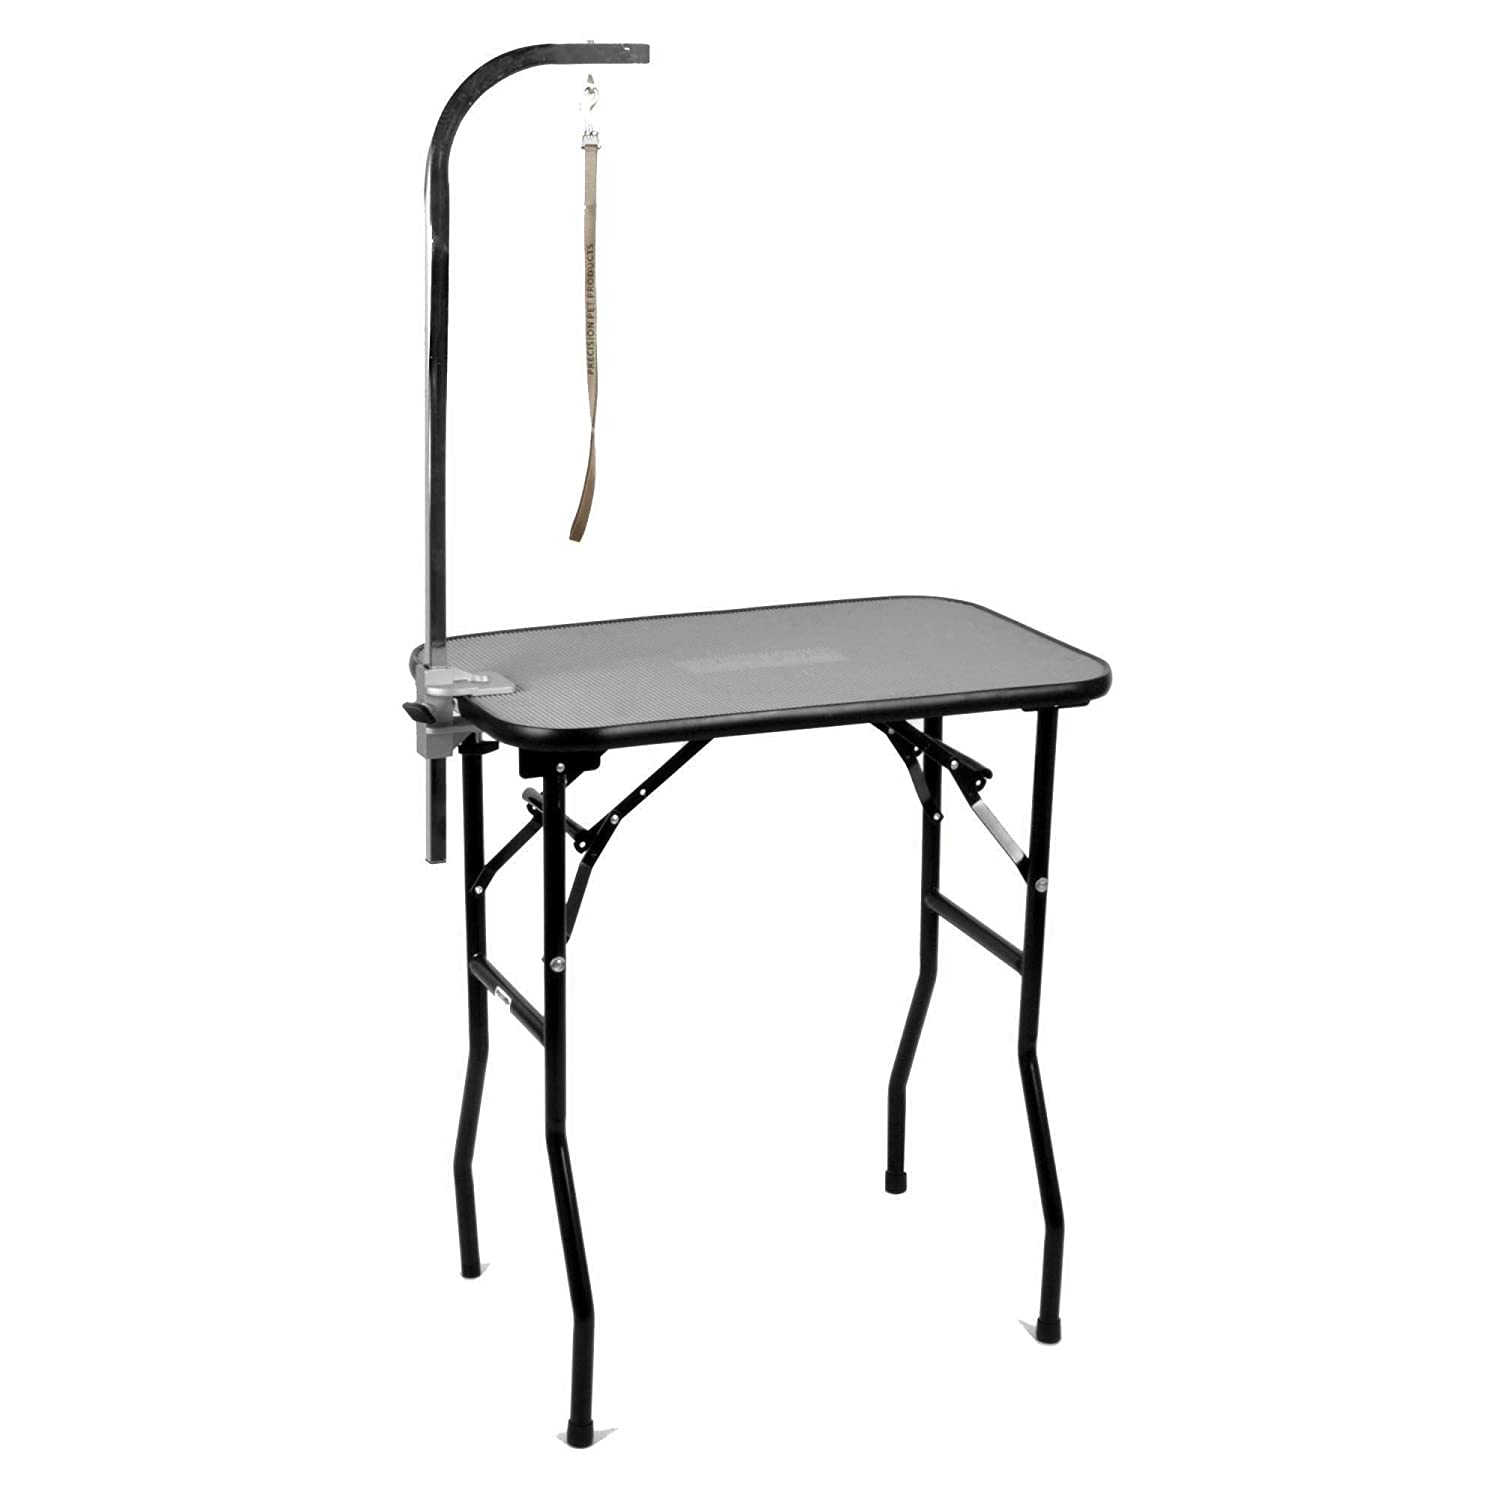 Precision Pet 7088301 Professional Grooming Table, 30